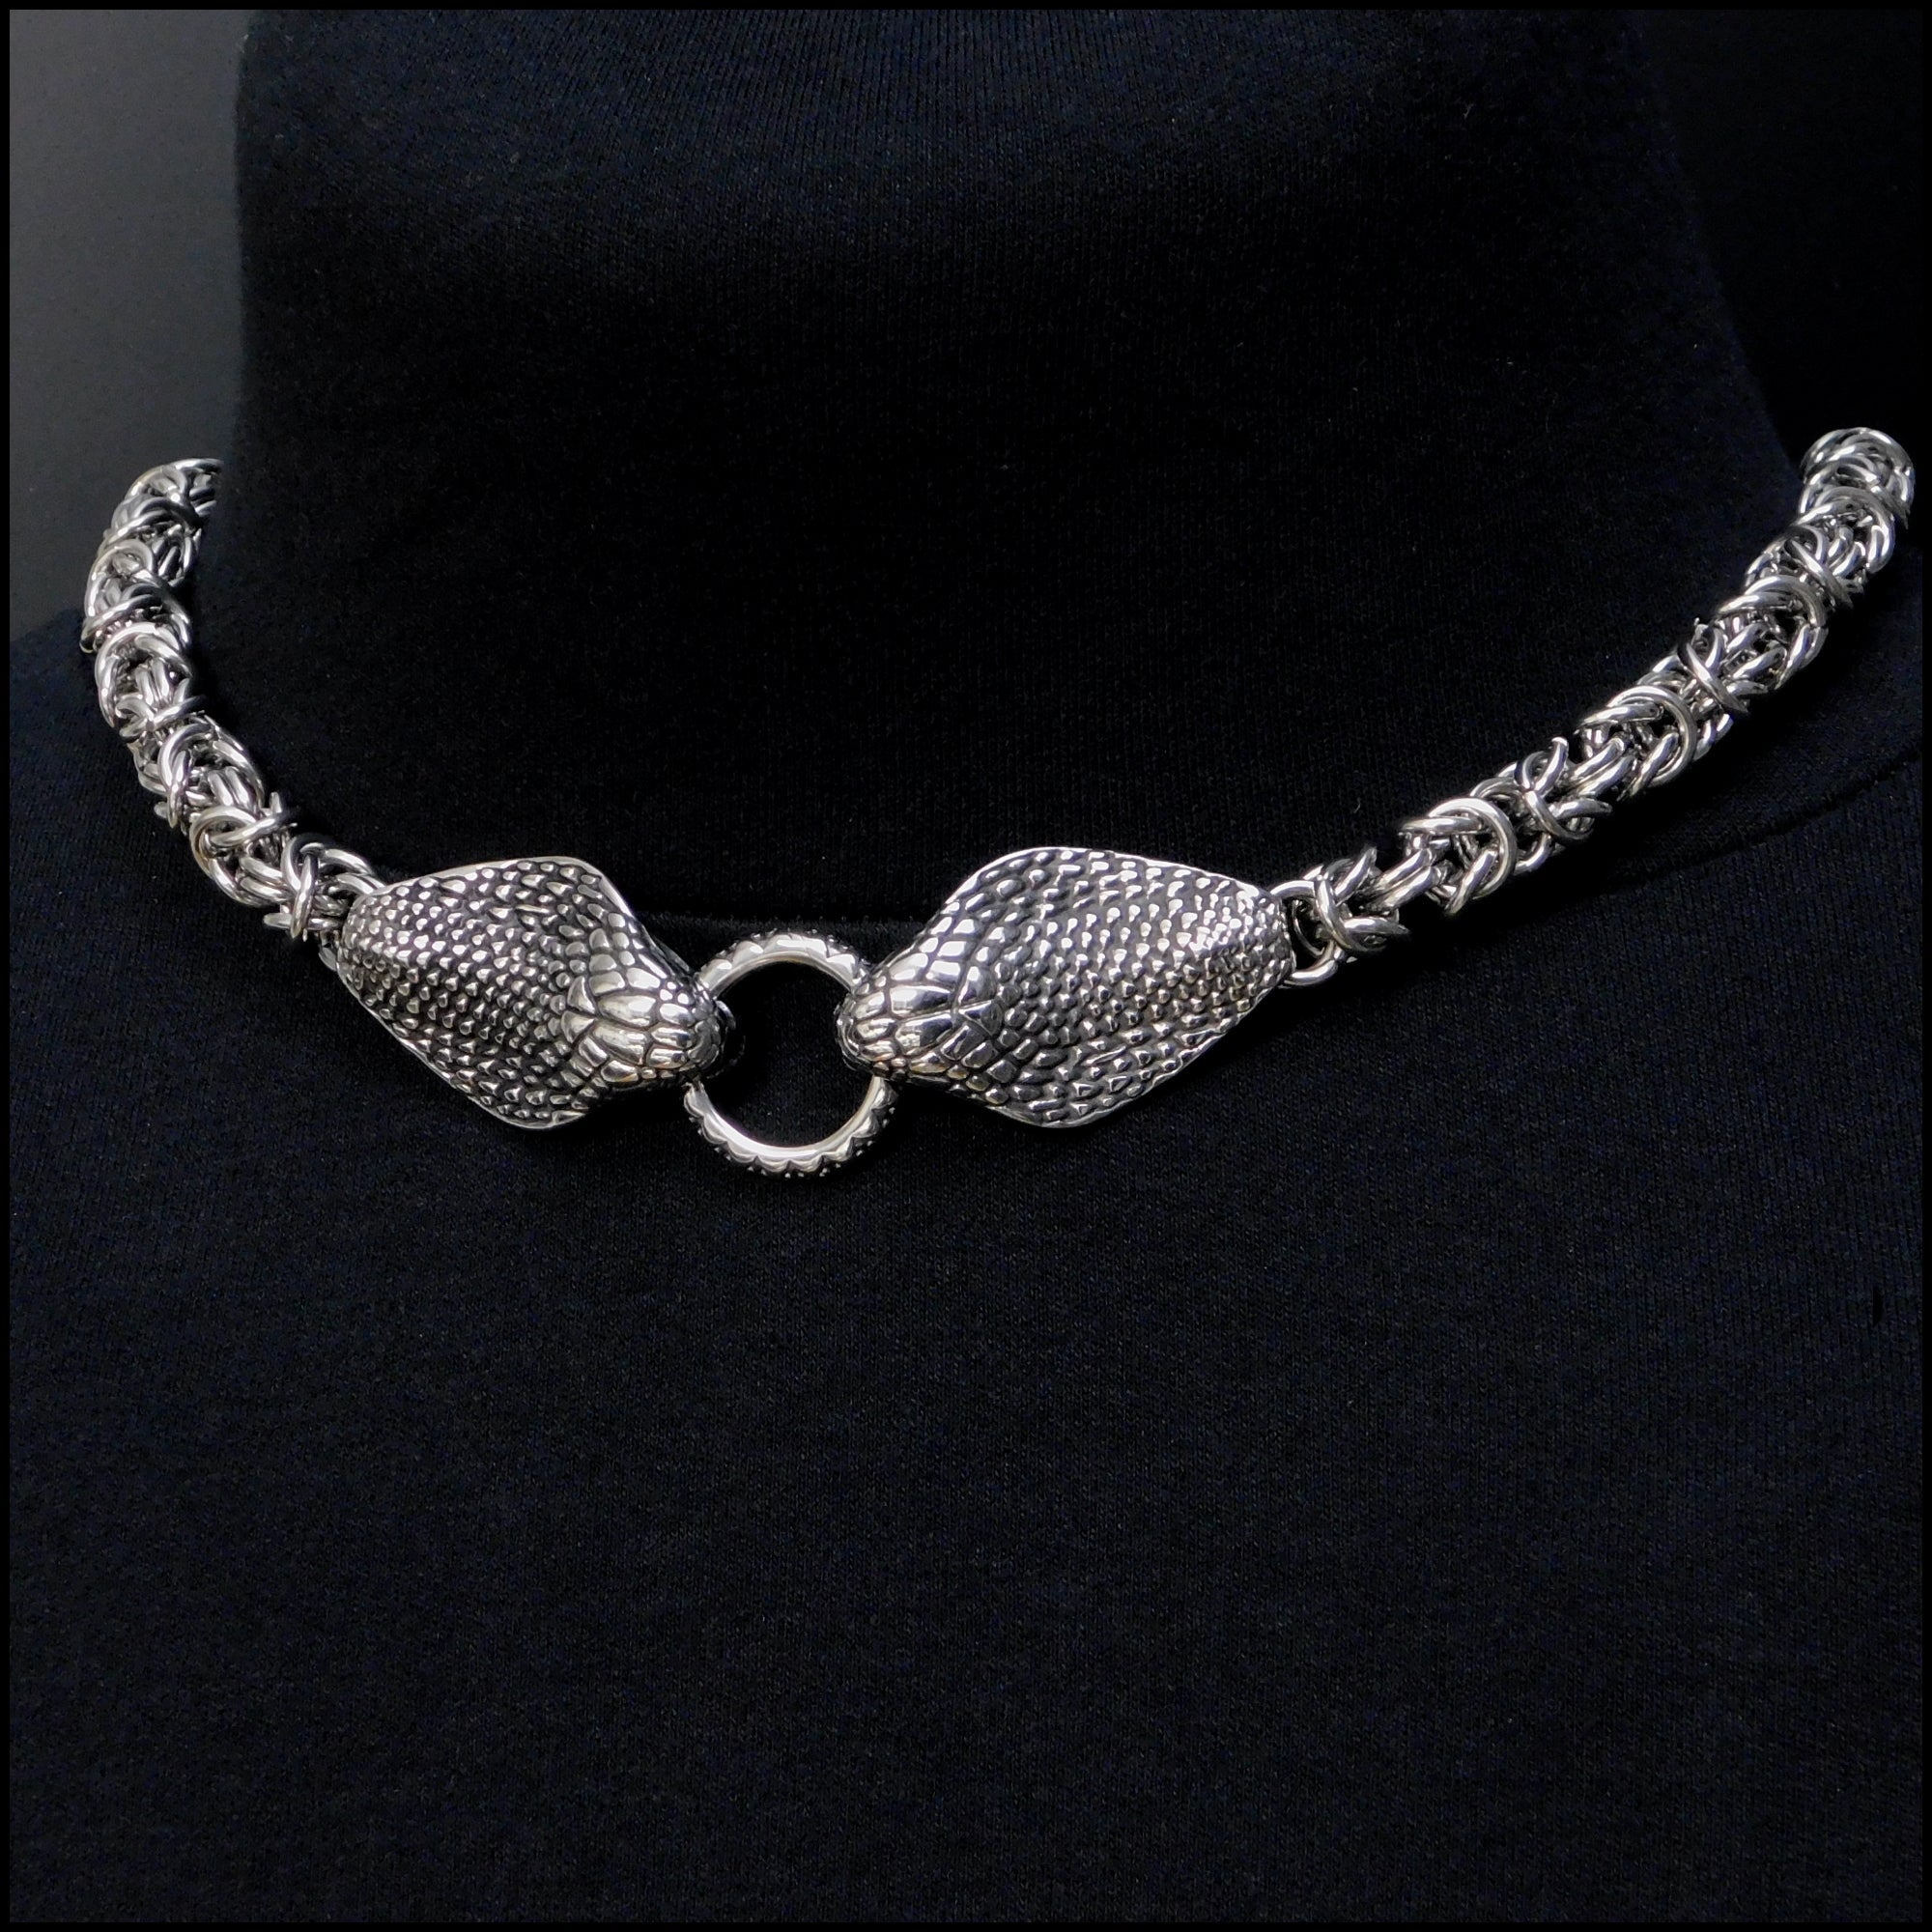 Guardian Cobras Necklace with Extra Thick Chainmaille Design Chain with Sculptured Cobra Head Ends